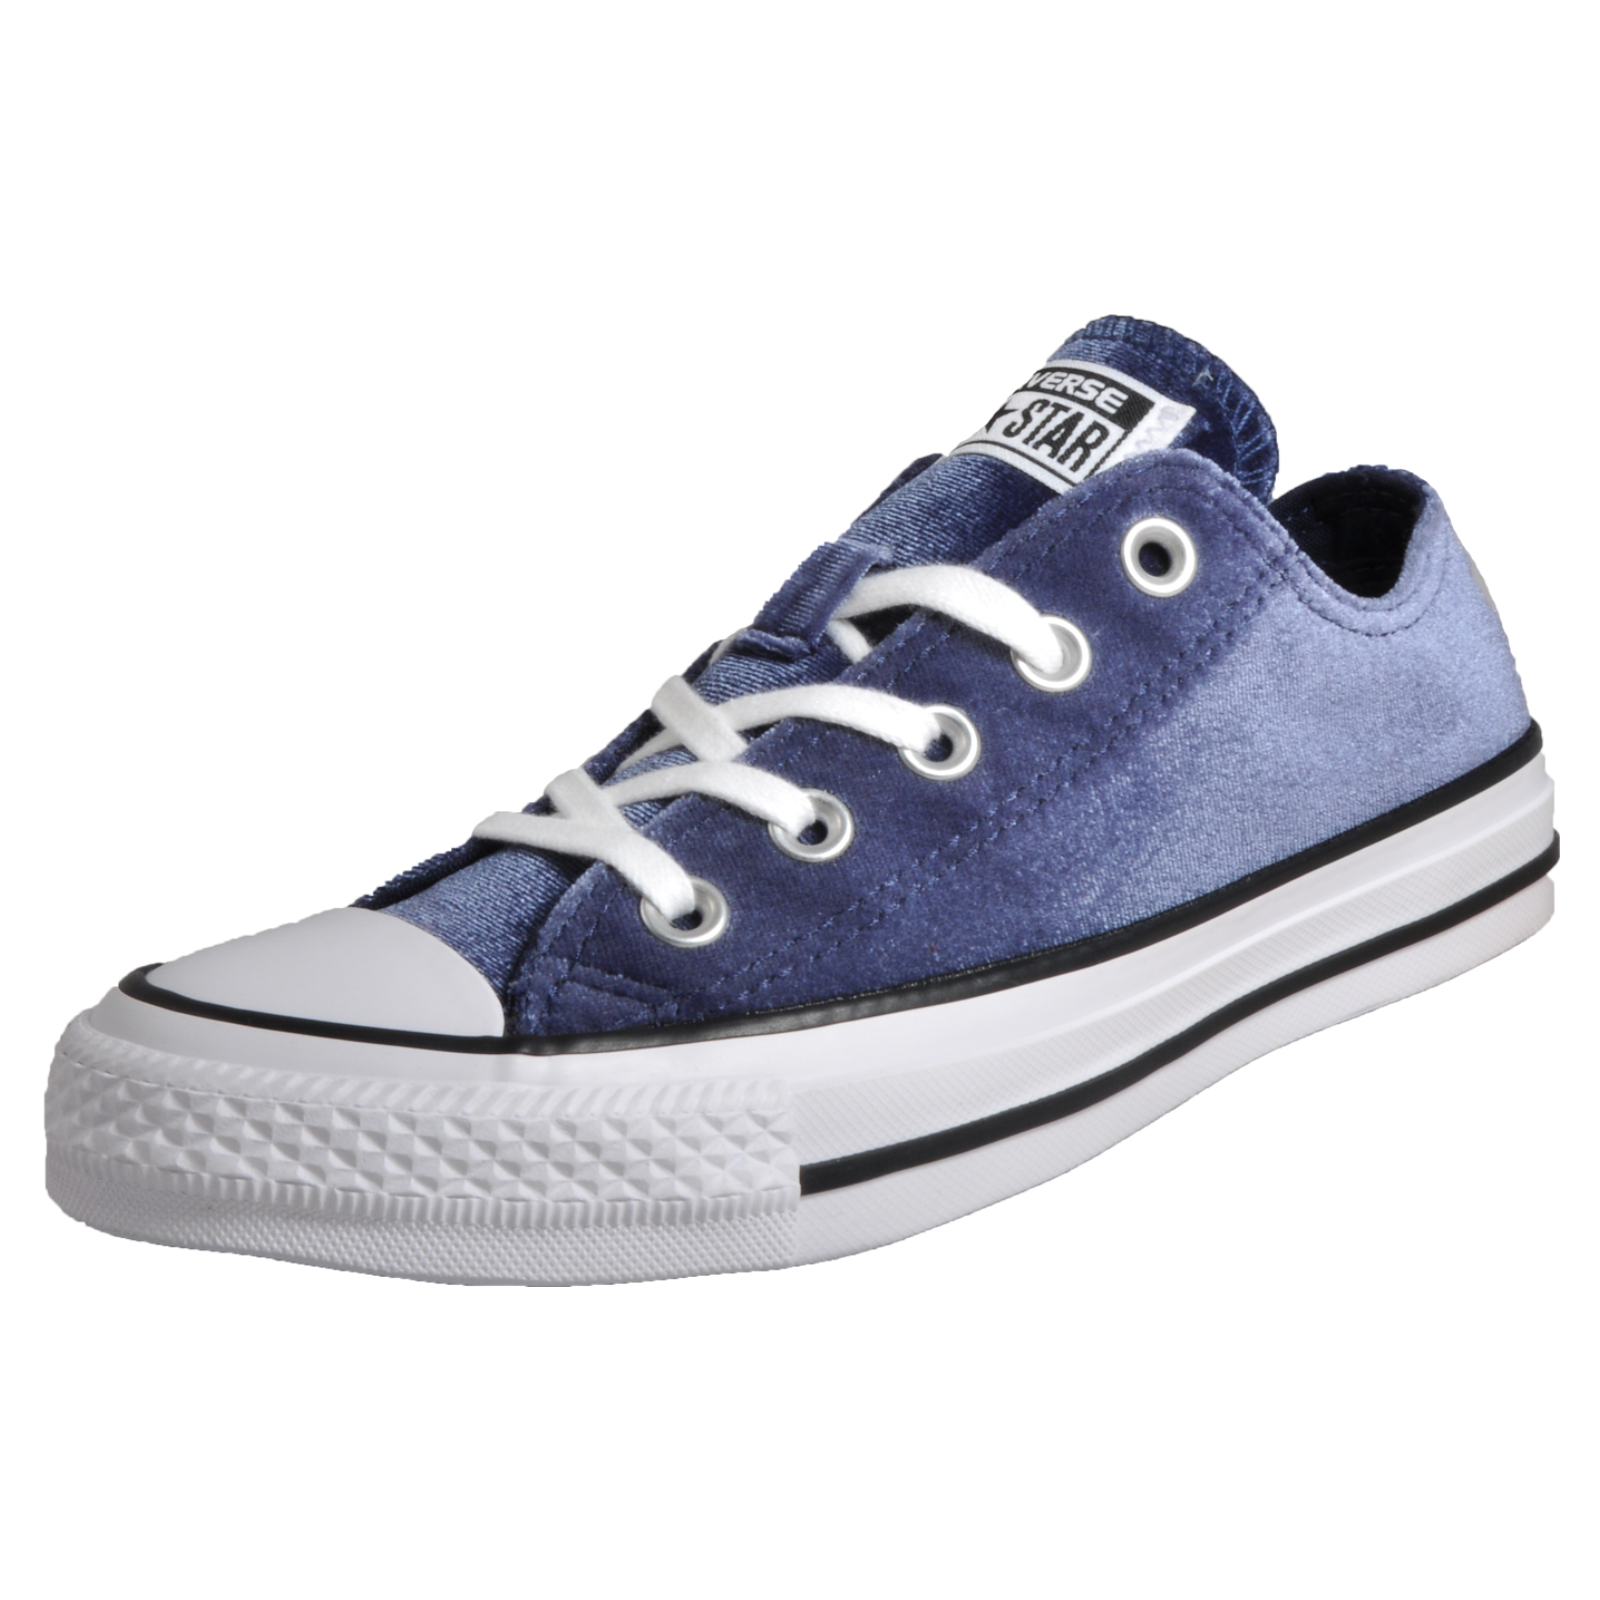 Converse Chuck Taylor All Star Velvet OX Women s Girls Casual Retro Fashion  Plimsol Trainers Navy 3ccf7c646